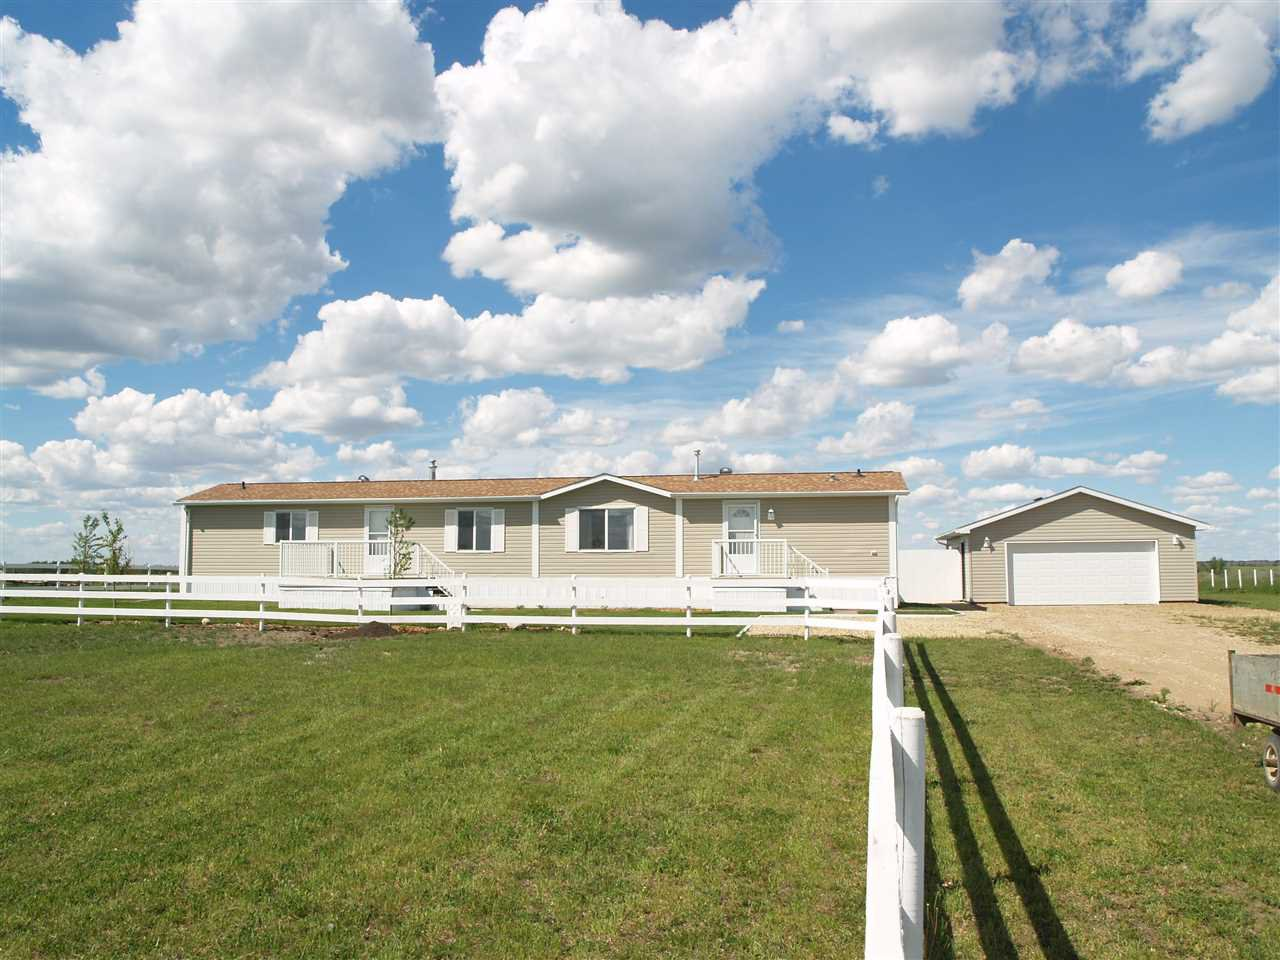 Main Photo: 182018 Twp 542: Rural Lamont County House for sale : MLS®# E4157617